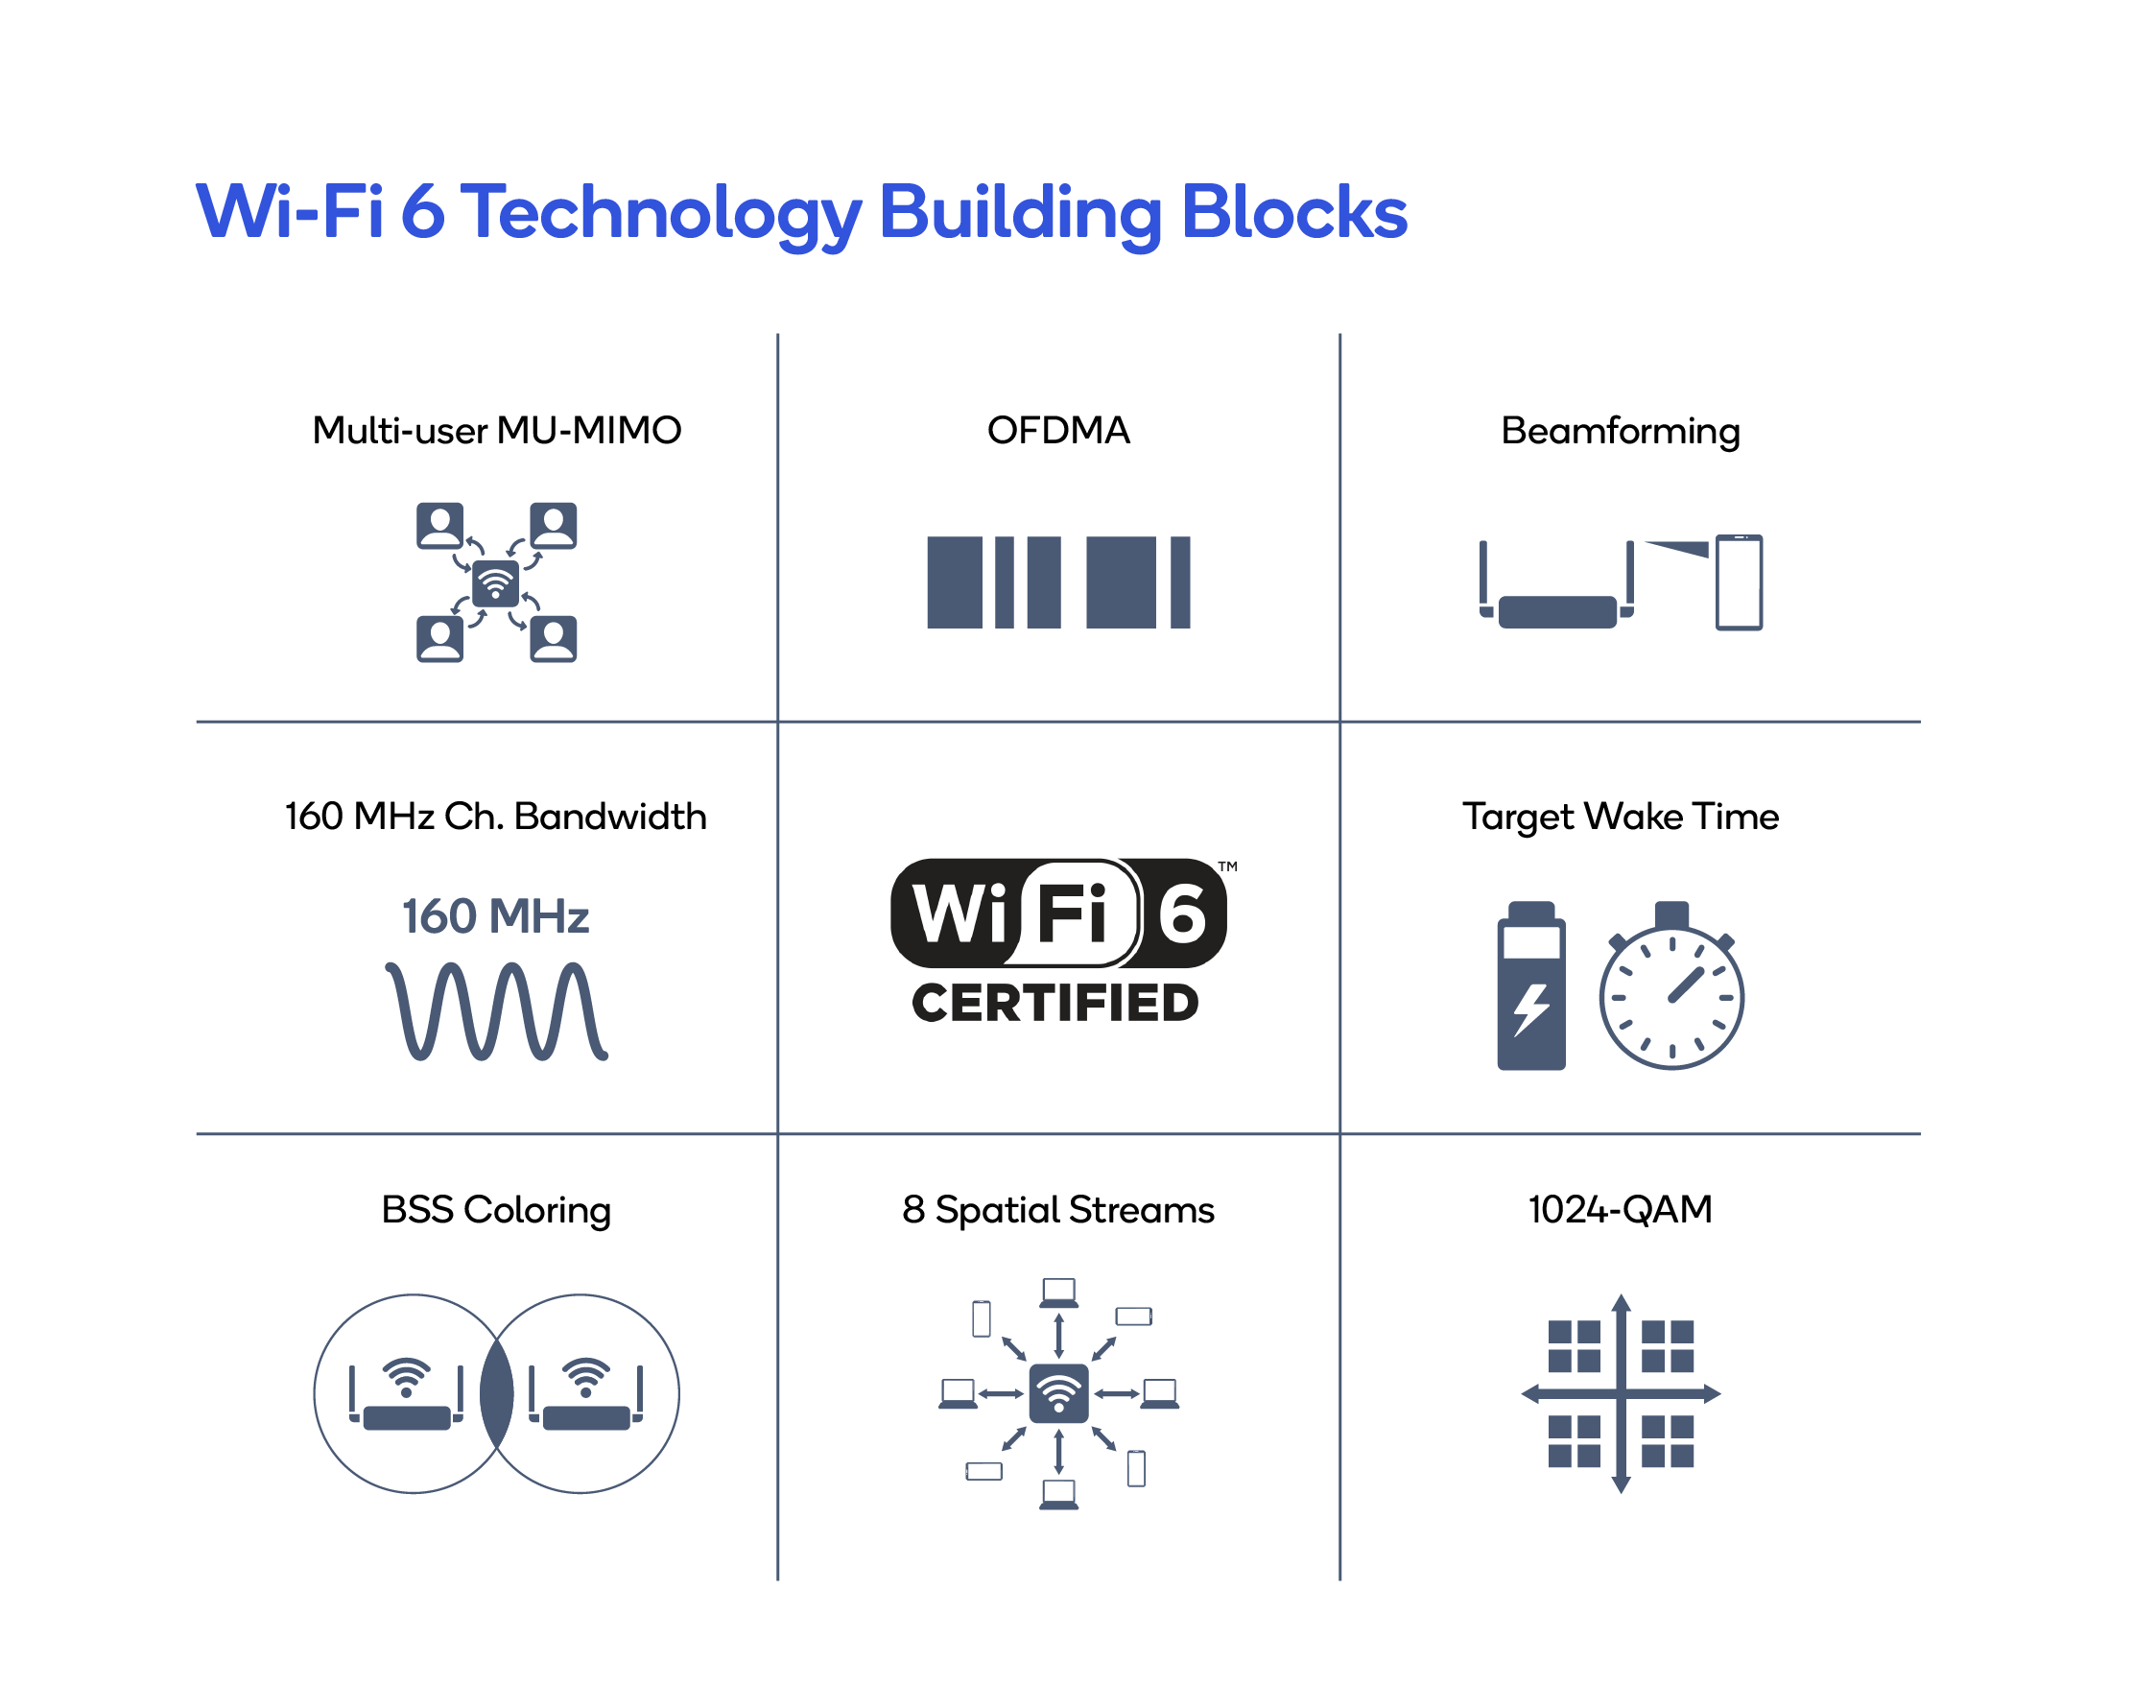 Wi-Fi 6 Technology Building Blocks